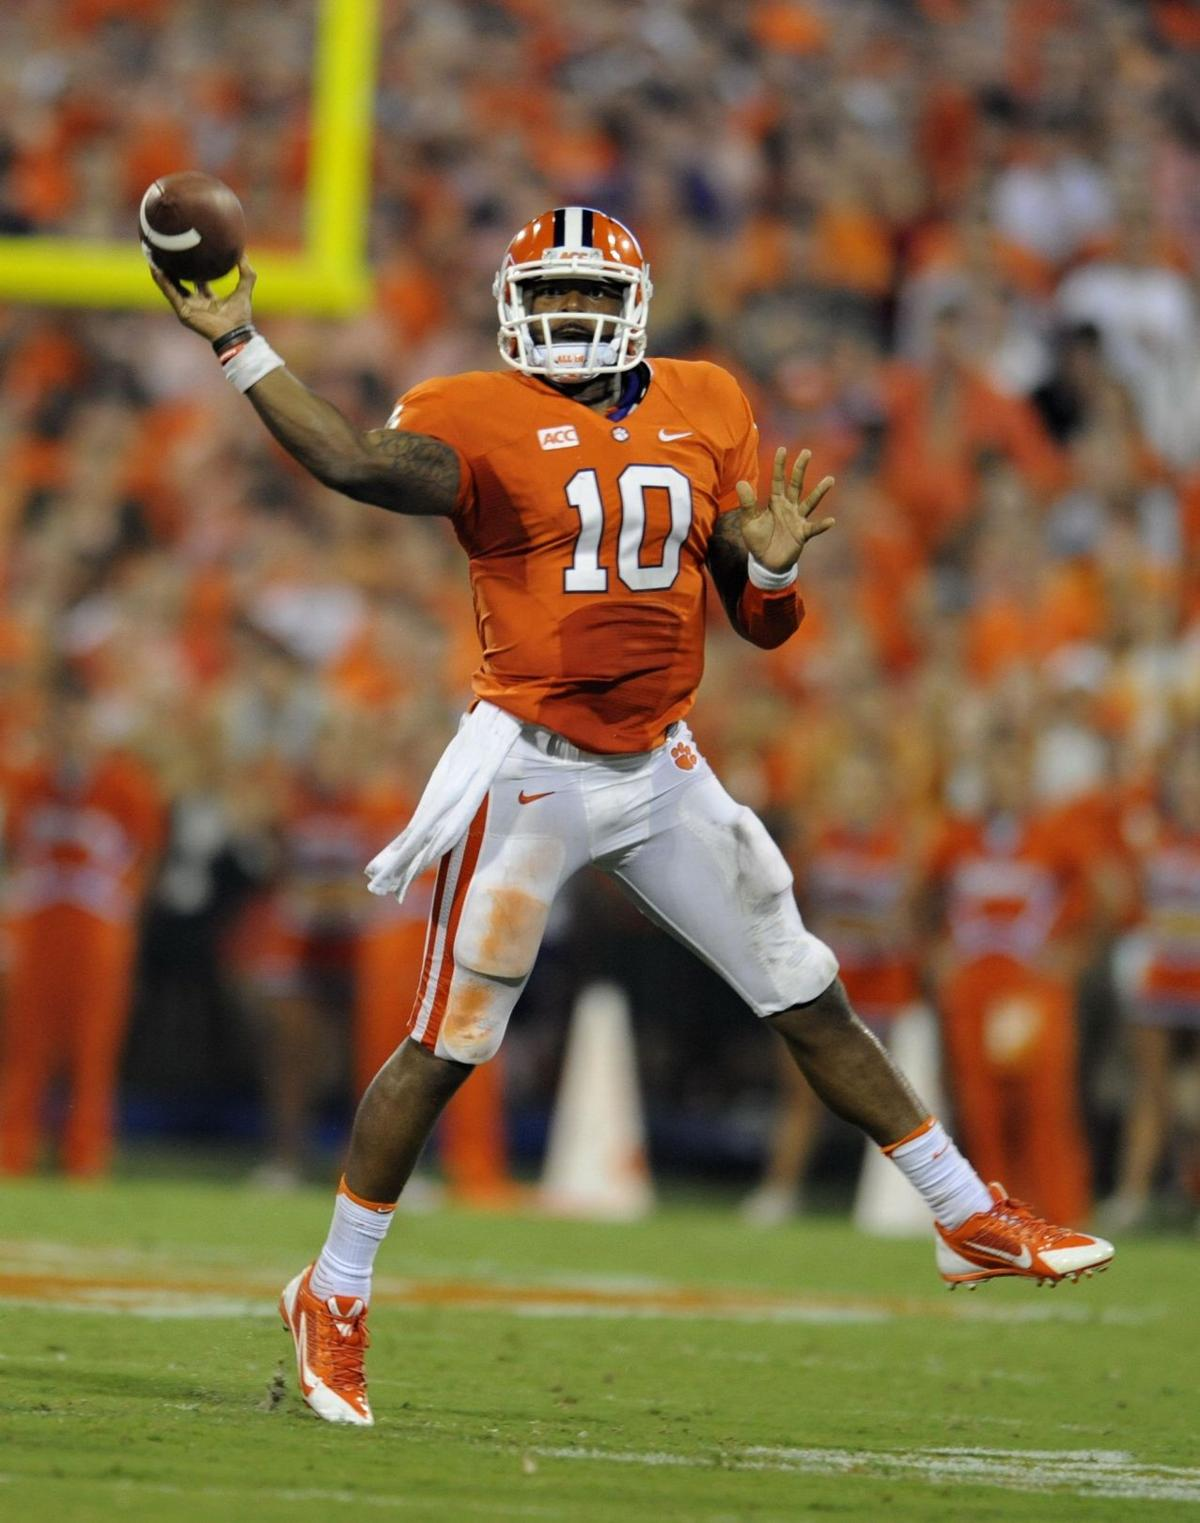 LIVE BLOG: Clemson vs. S.C. State live blog and chat